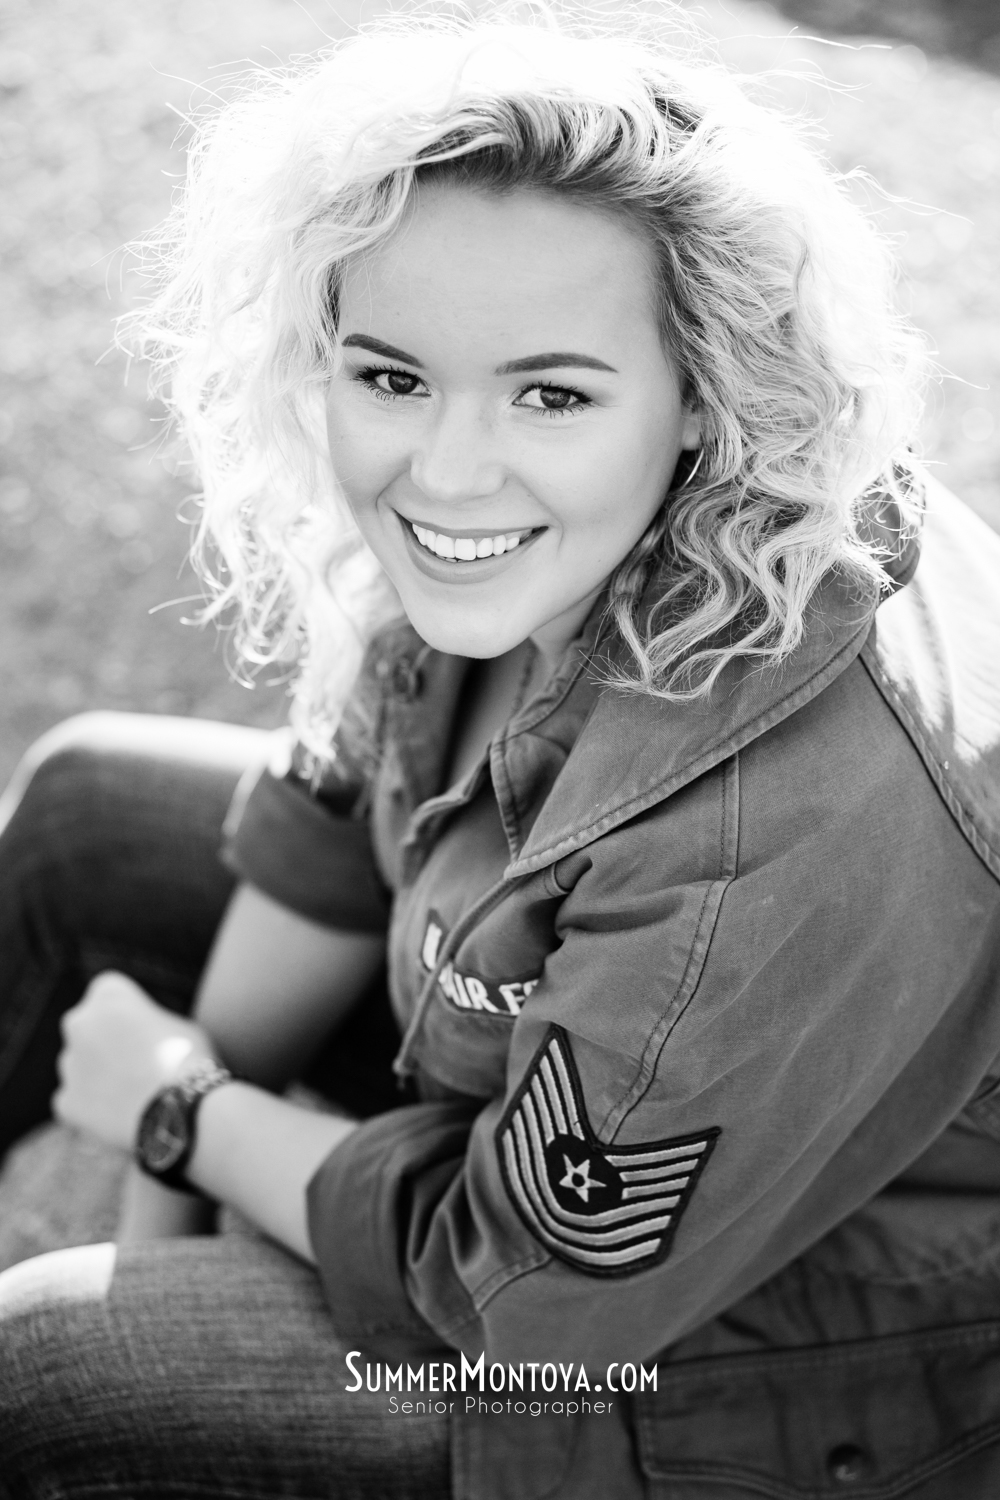 Senior Photographer | Williams Field High School